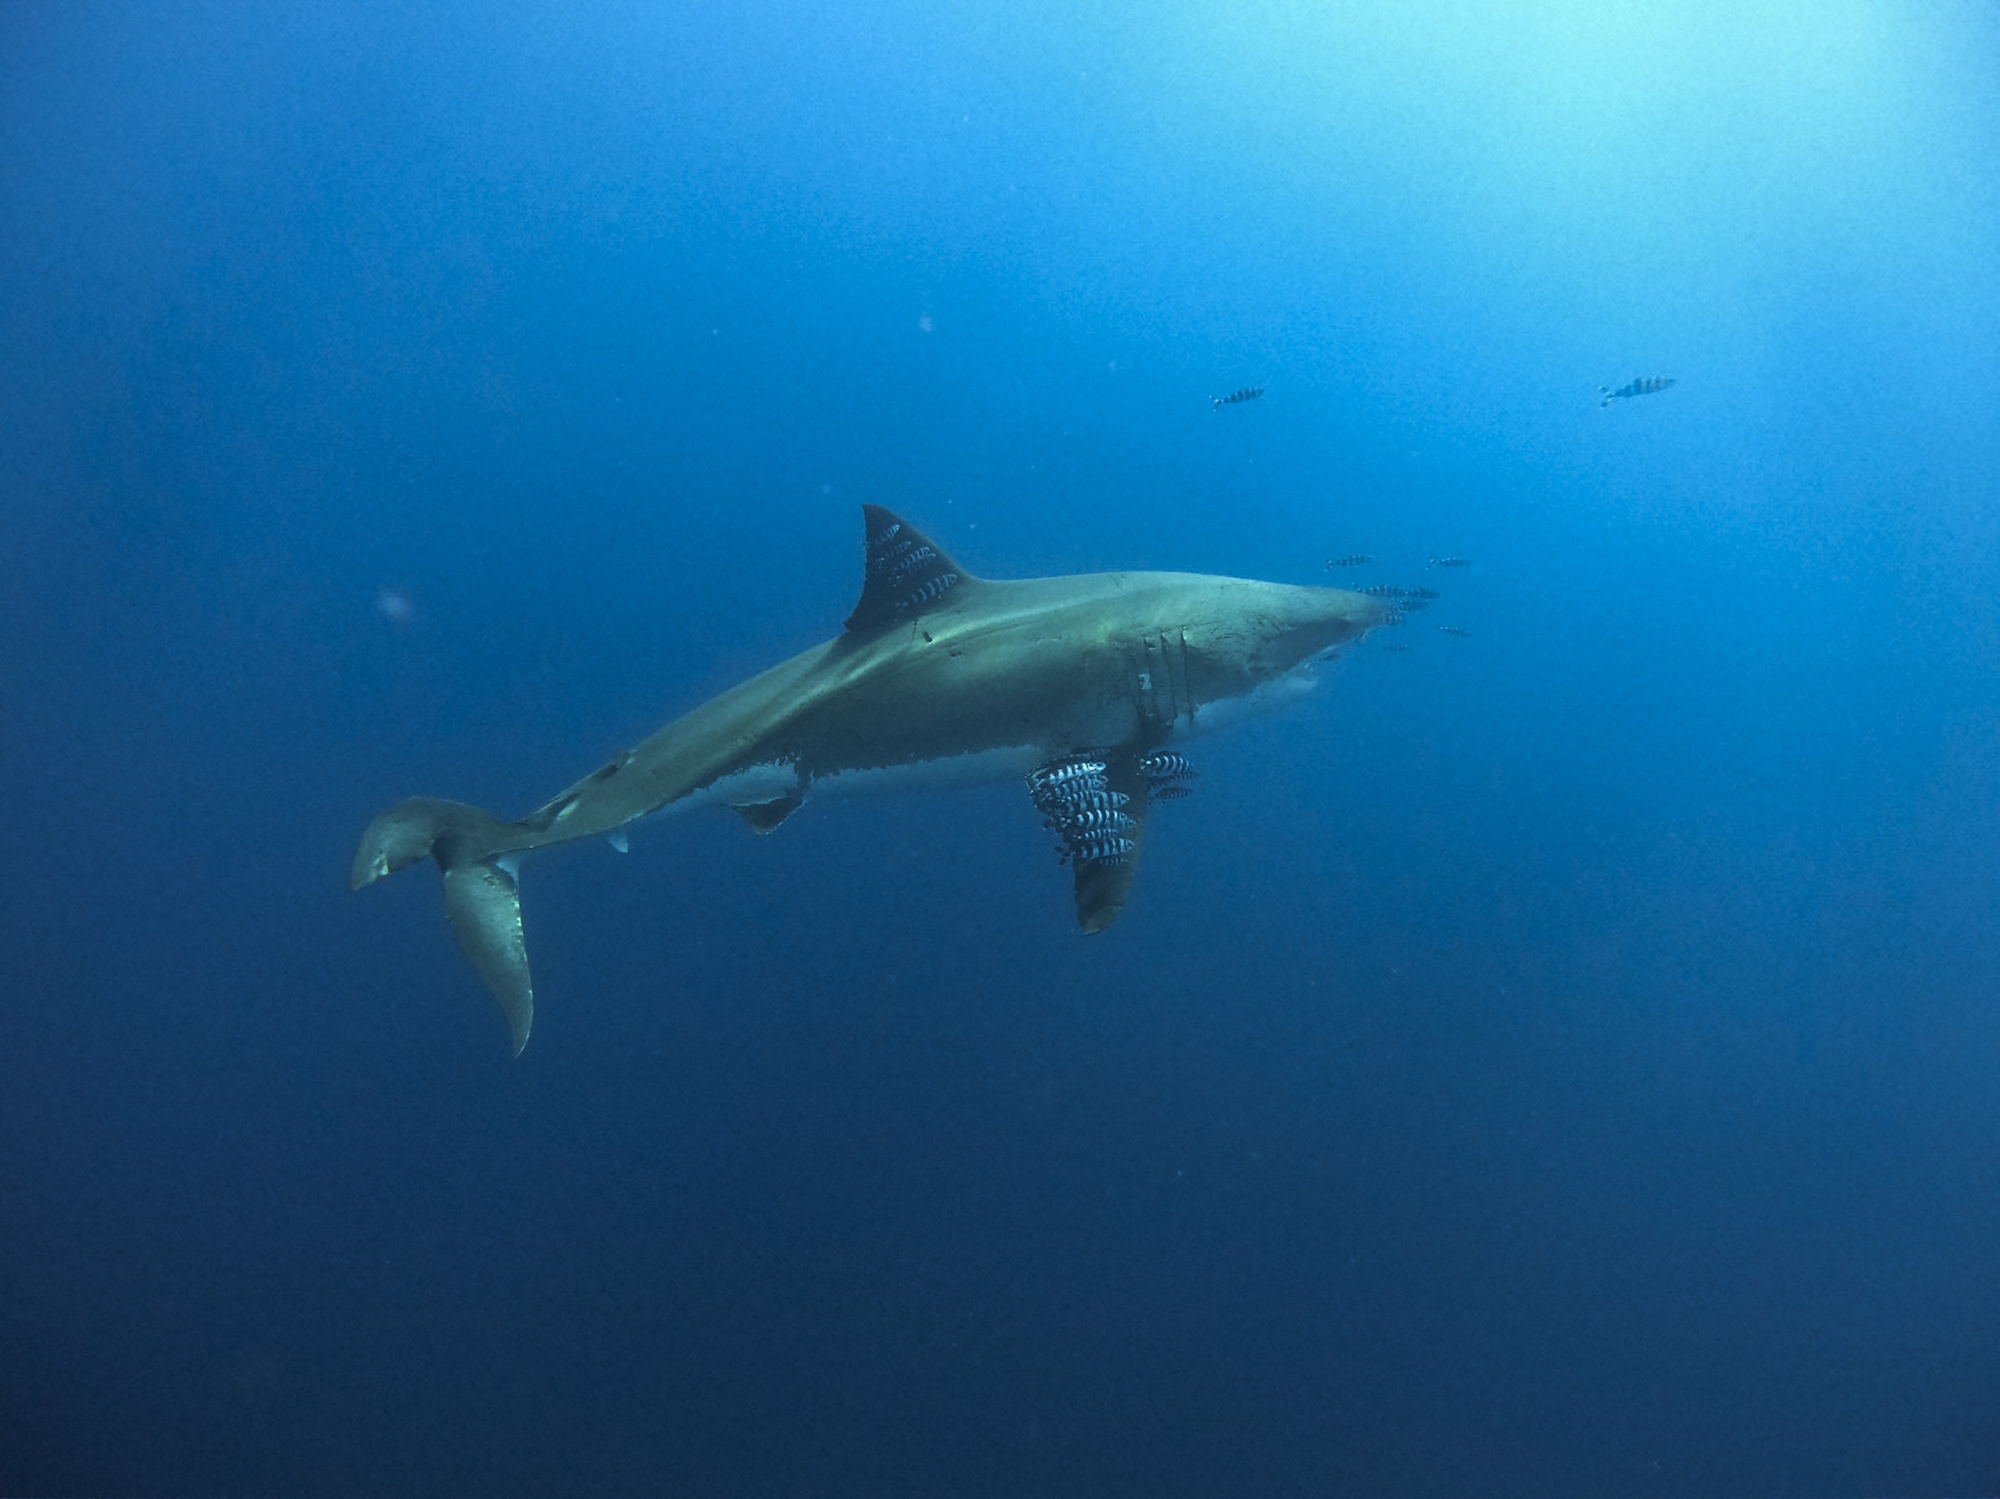 Lucy the great white shark and her pilot fish